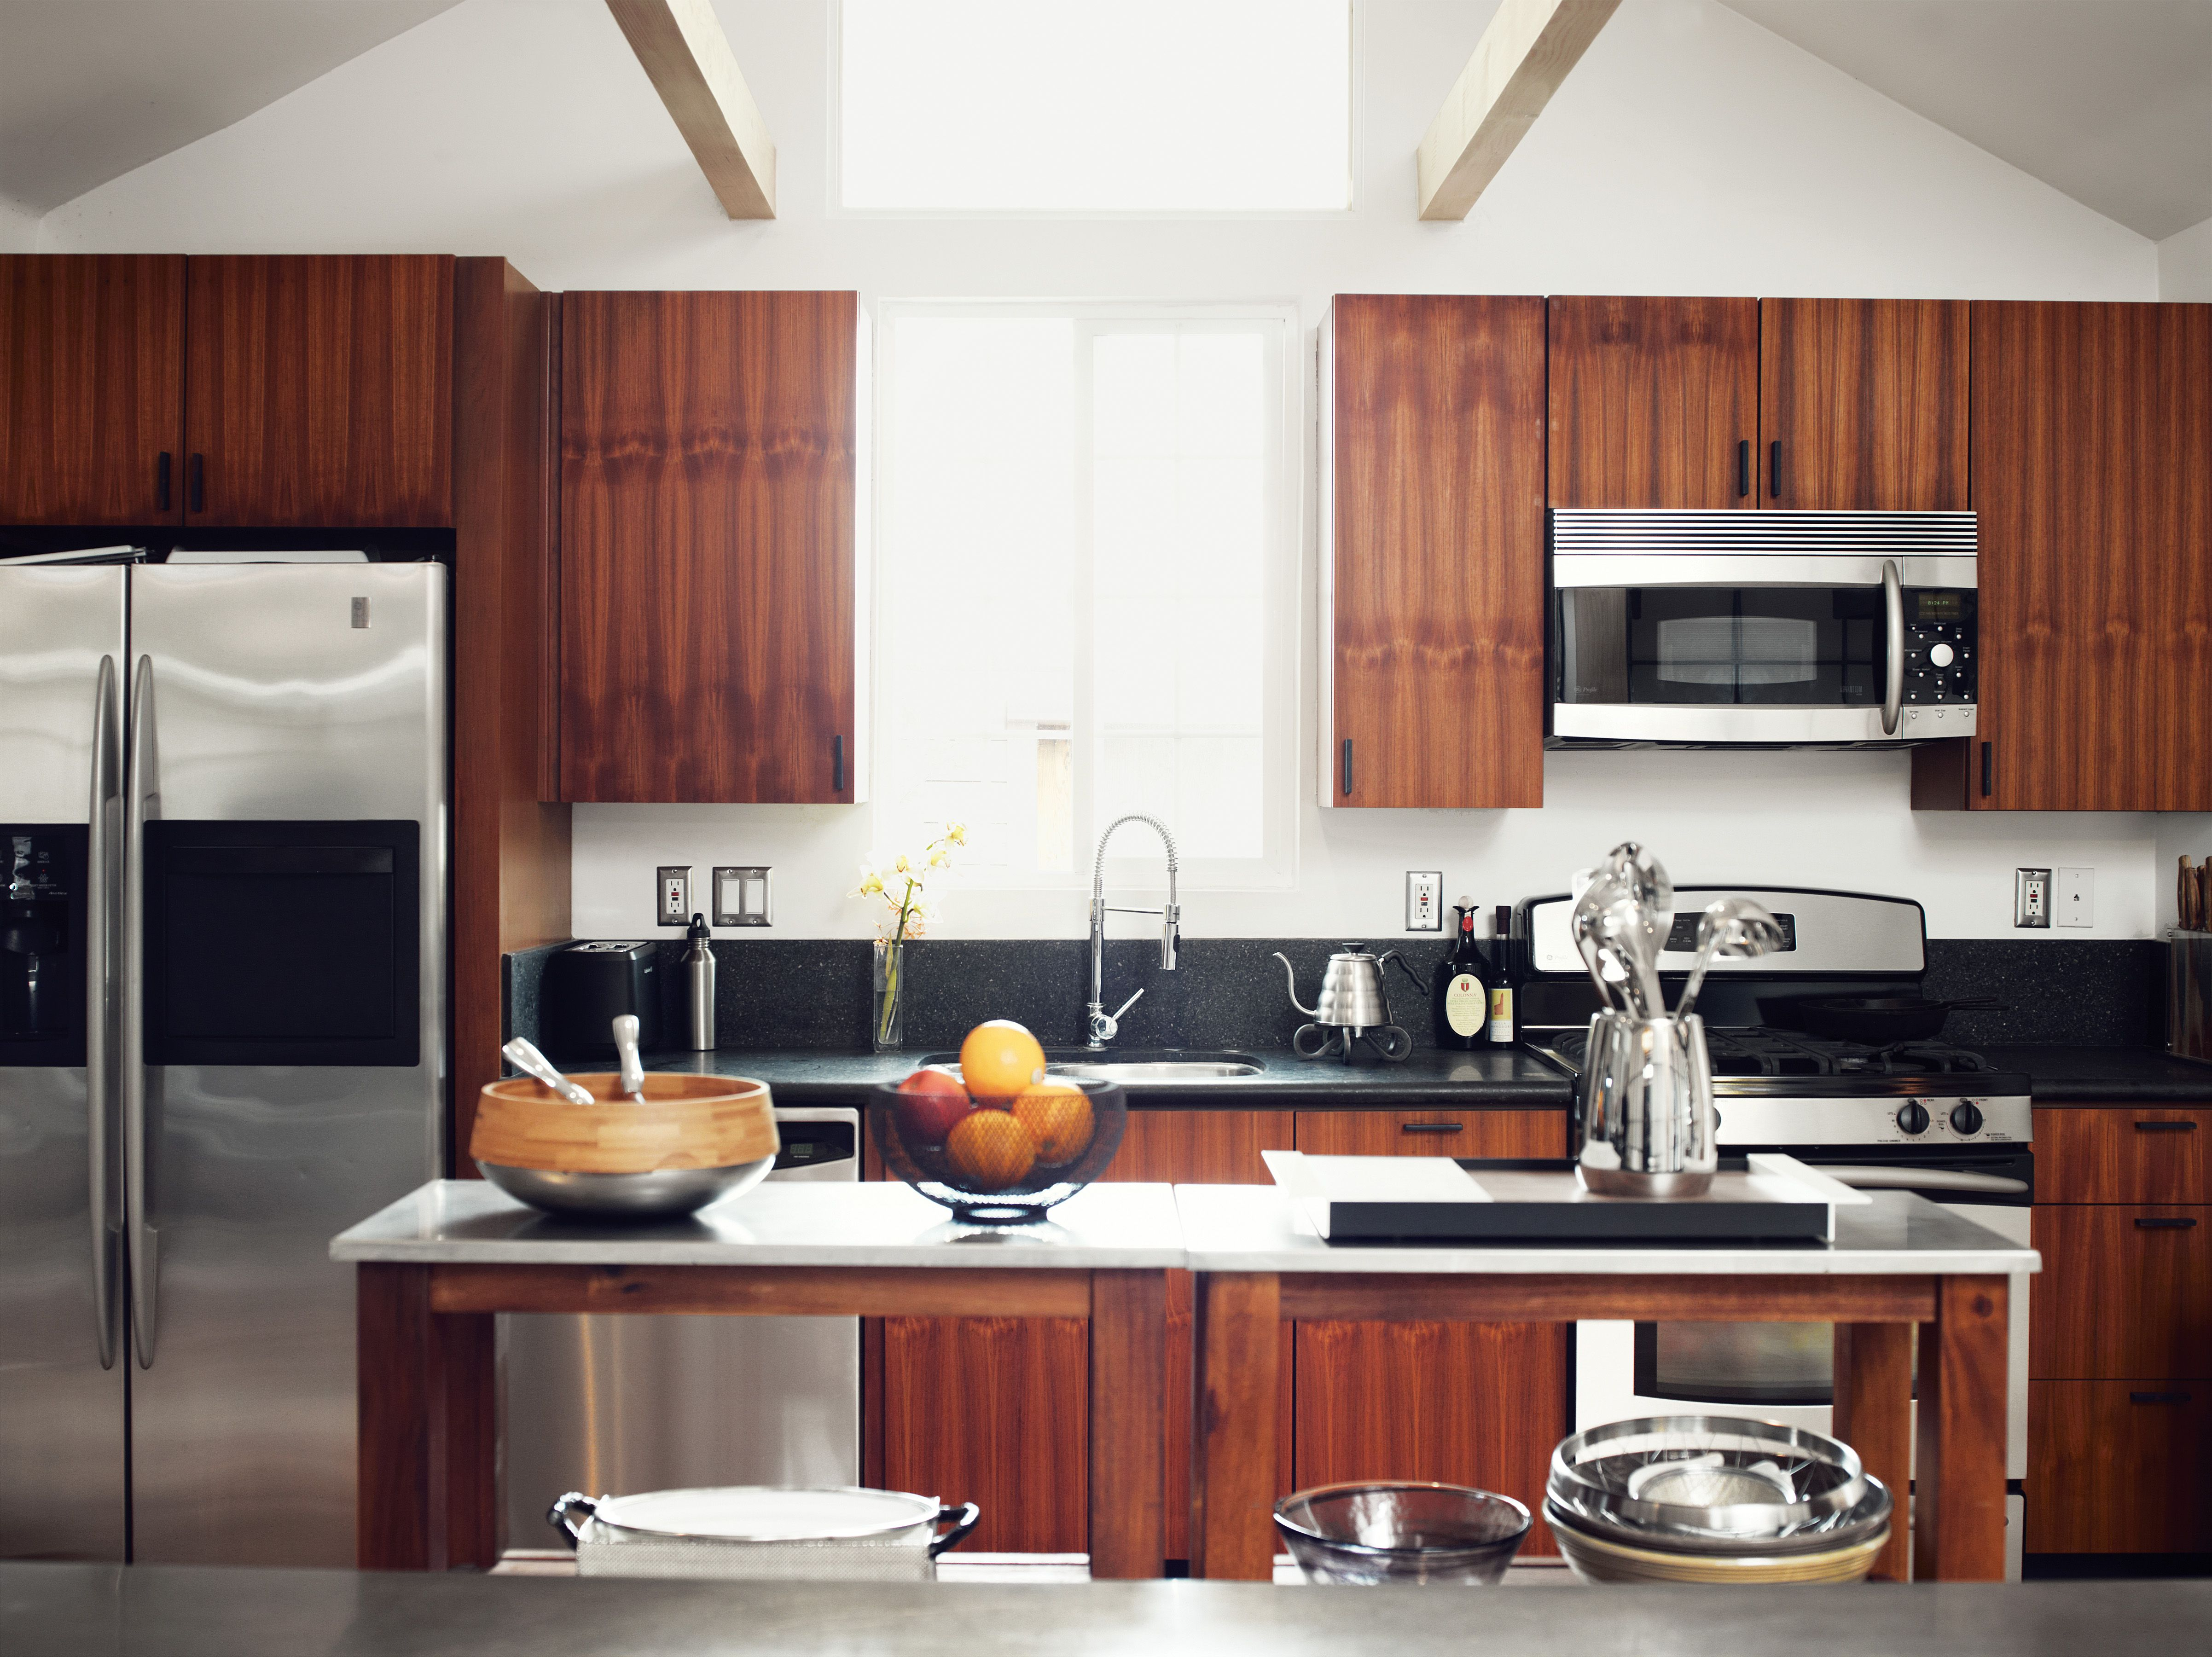 the designer worked with kartheiser s existing appliances in the